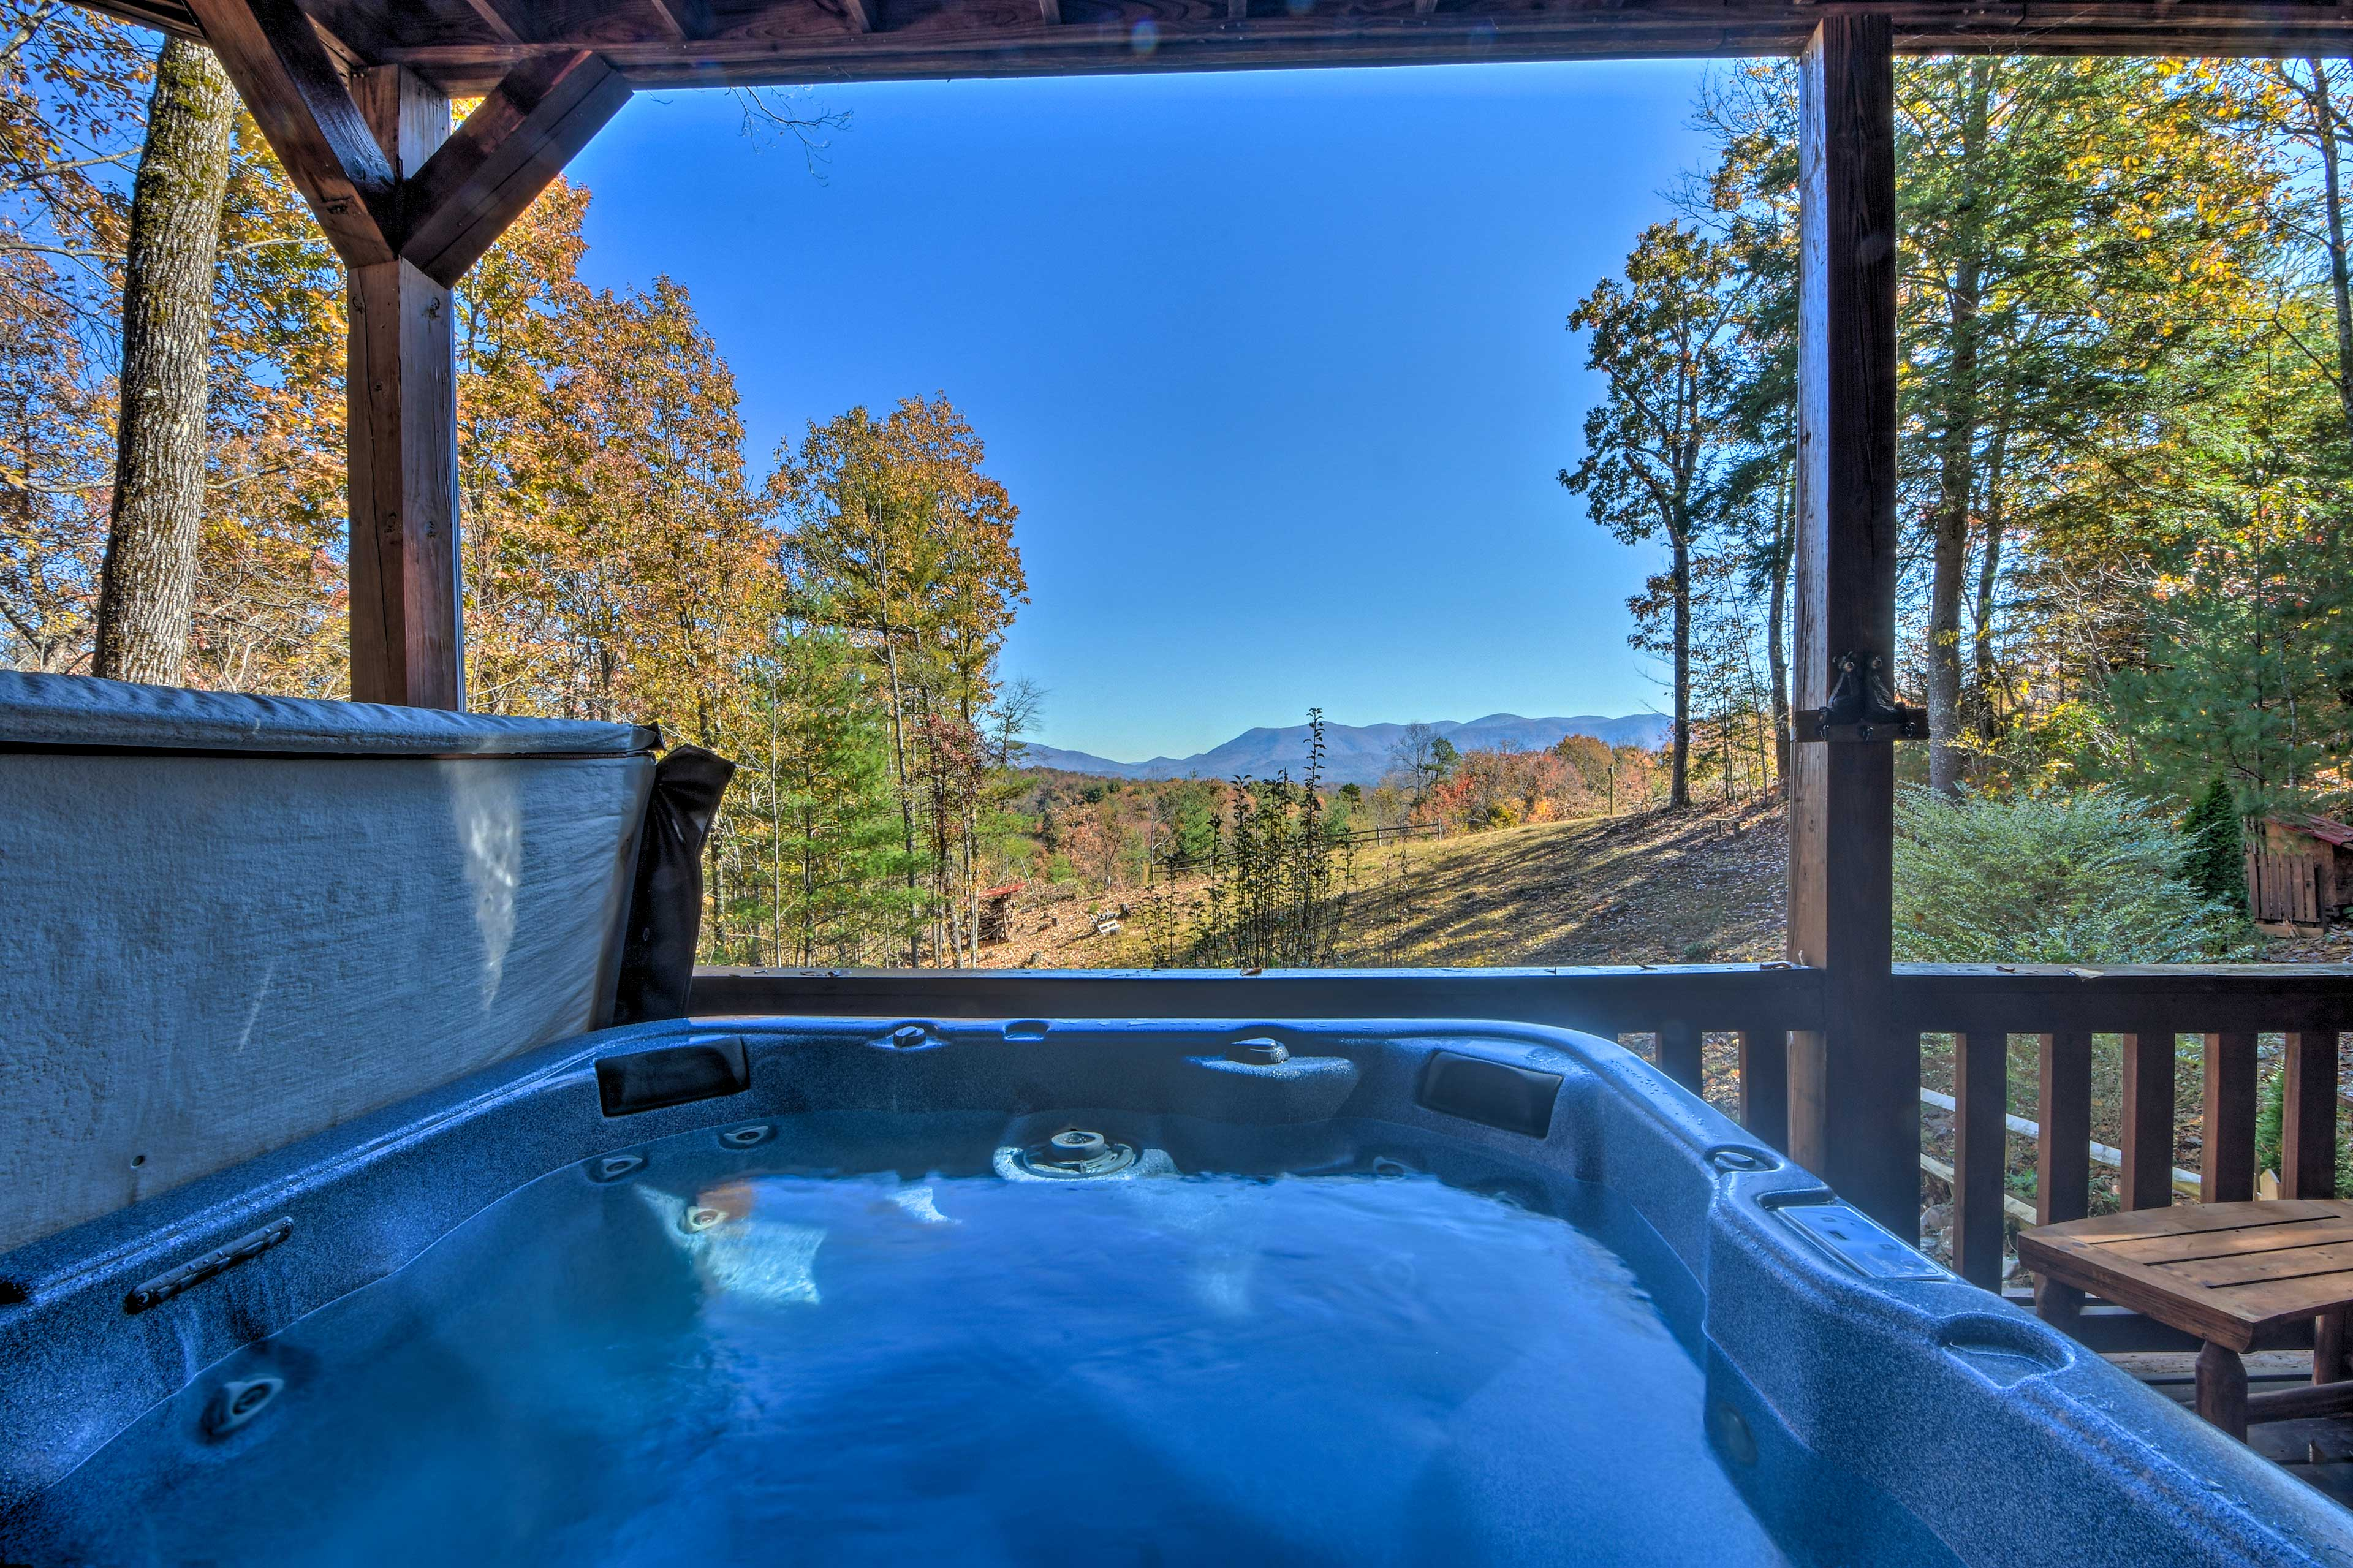 Admire the breathtaking mountain views from the privacy of your own hot tub.